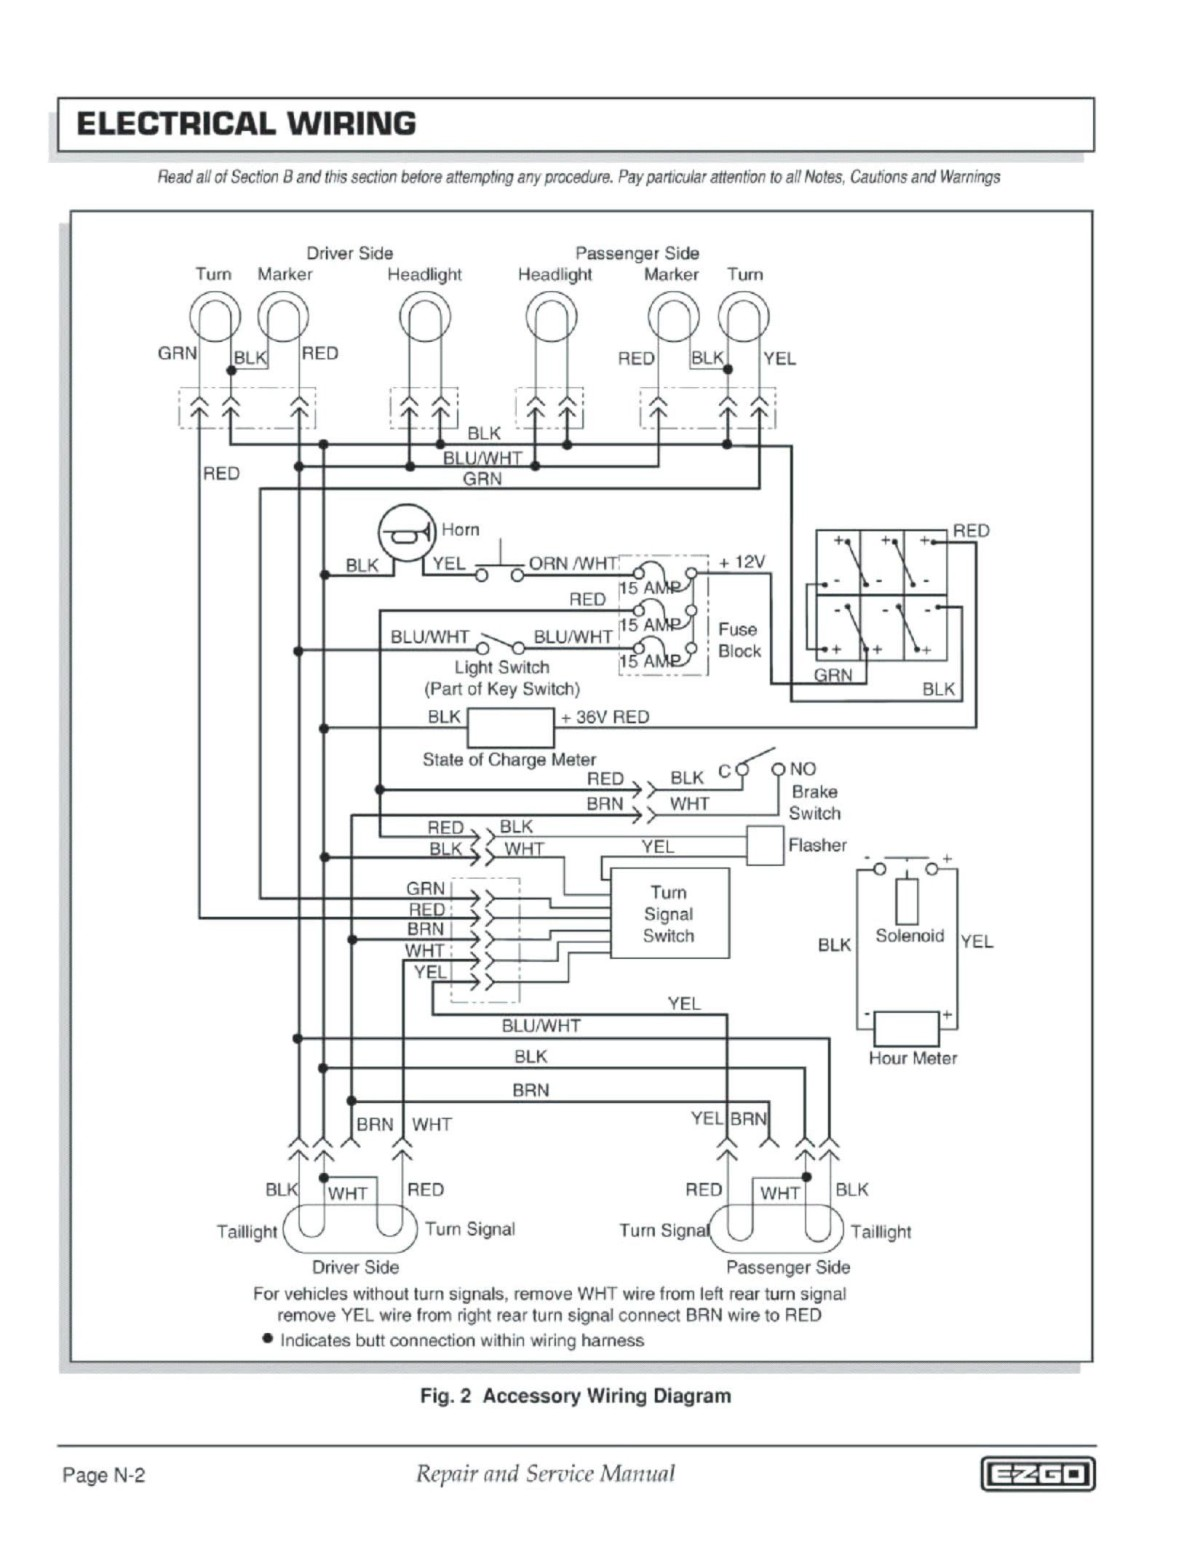 Wiring Diagram Of Honeywell Thermostat